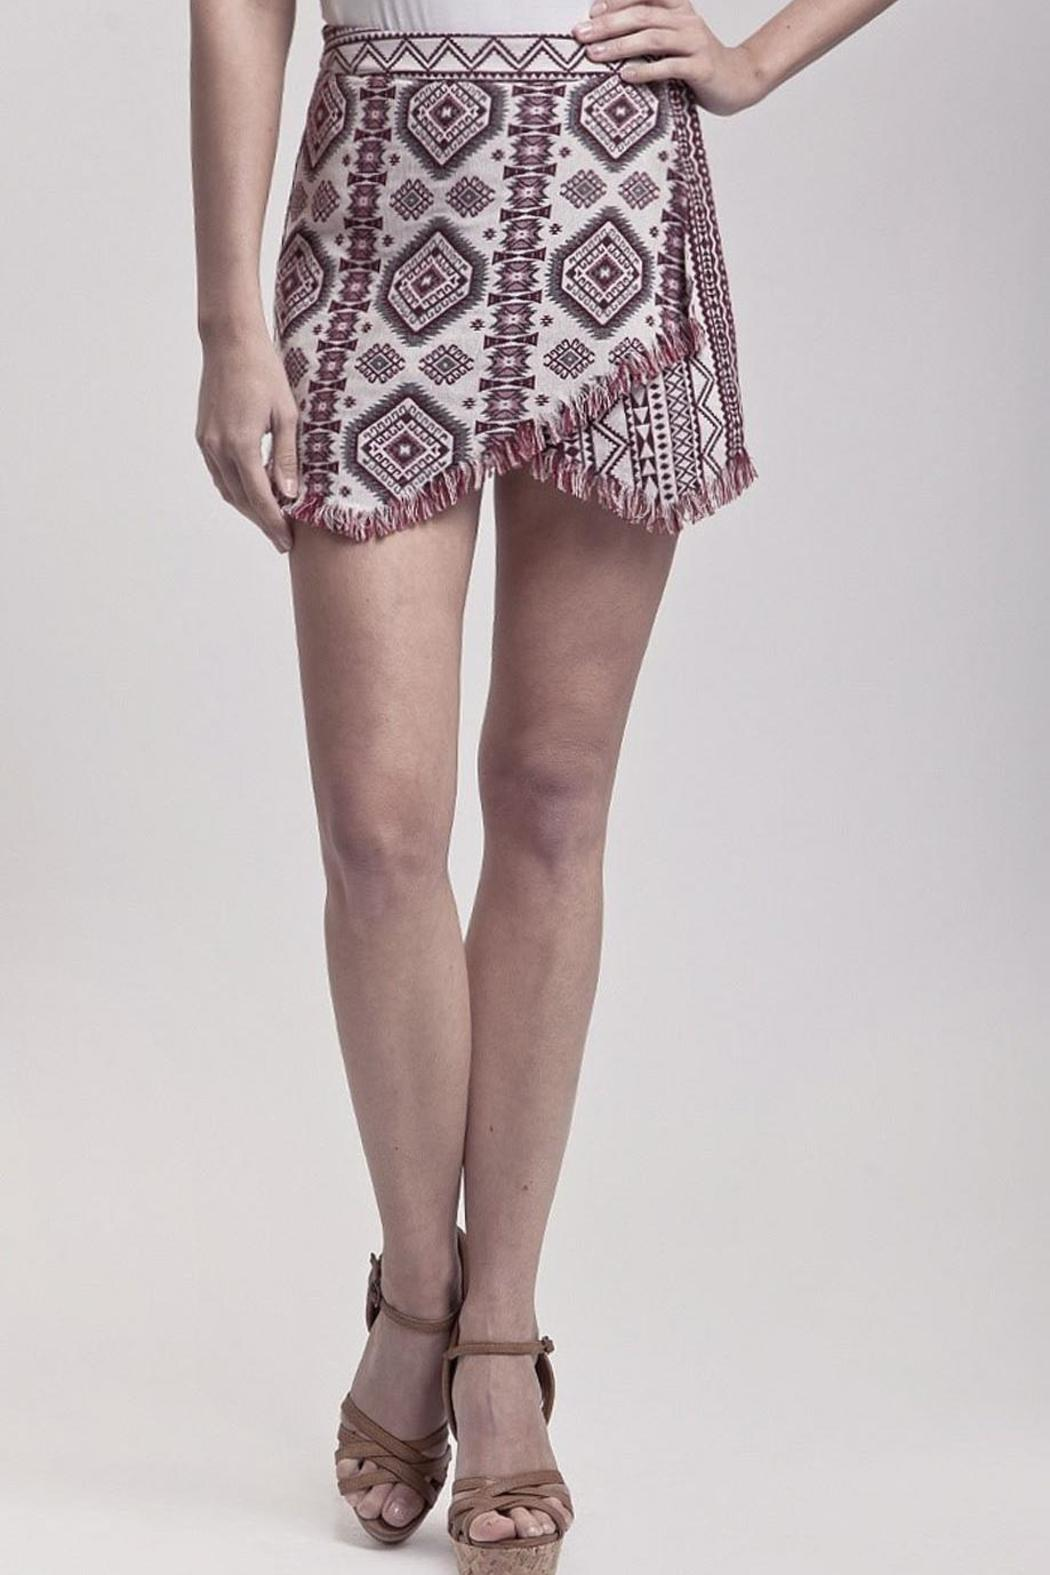 Blu Pepper Aztec Print Skort from California by Maple Boutique ...